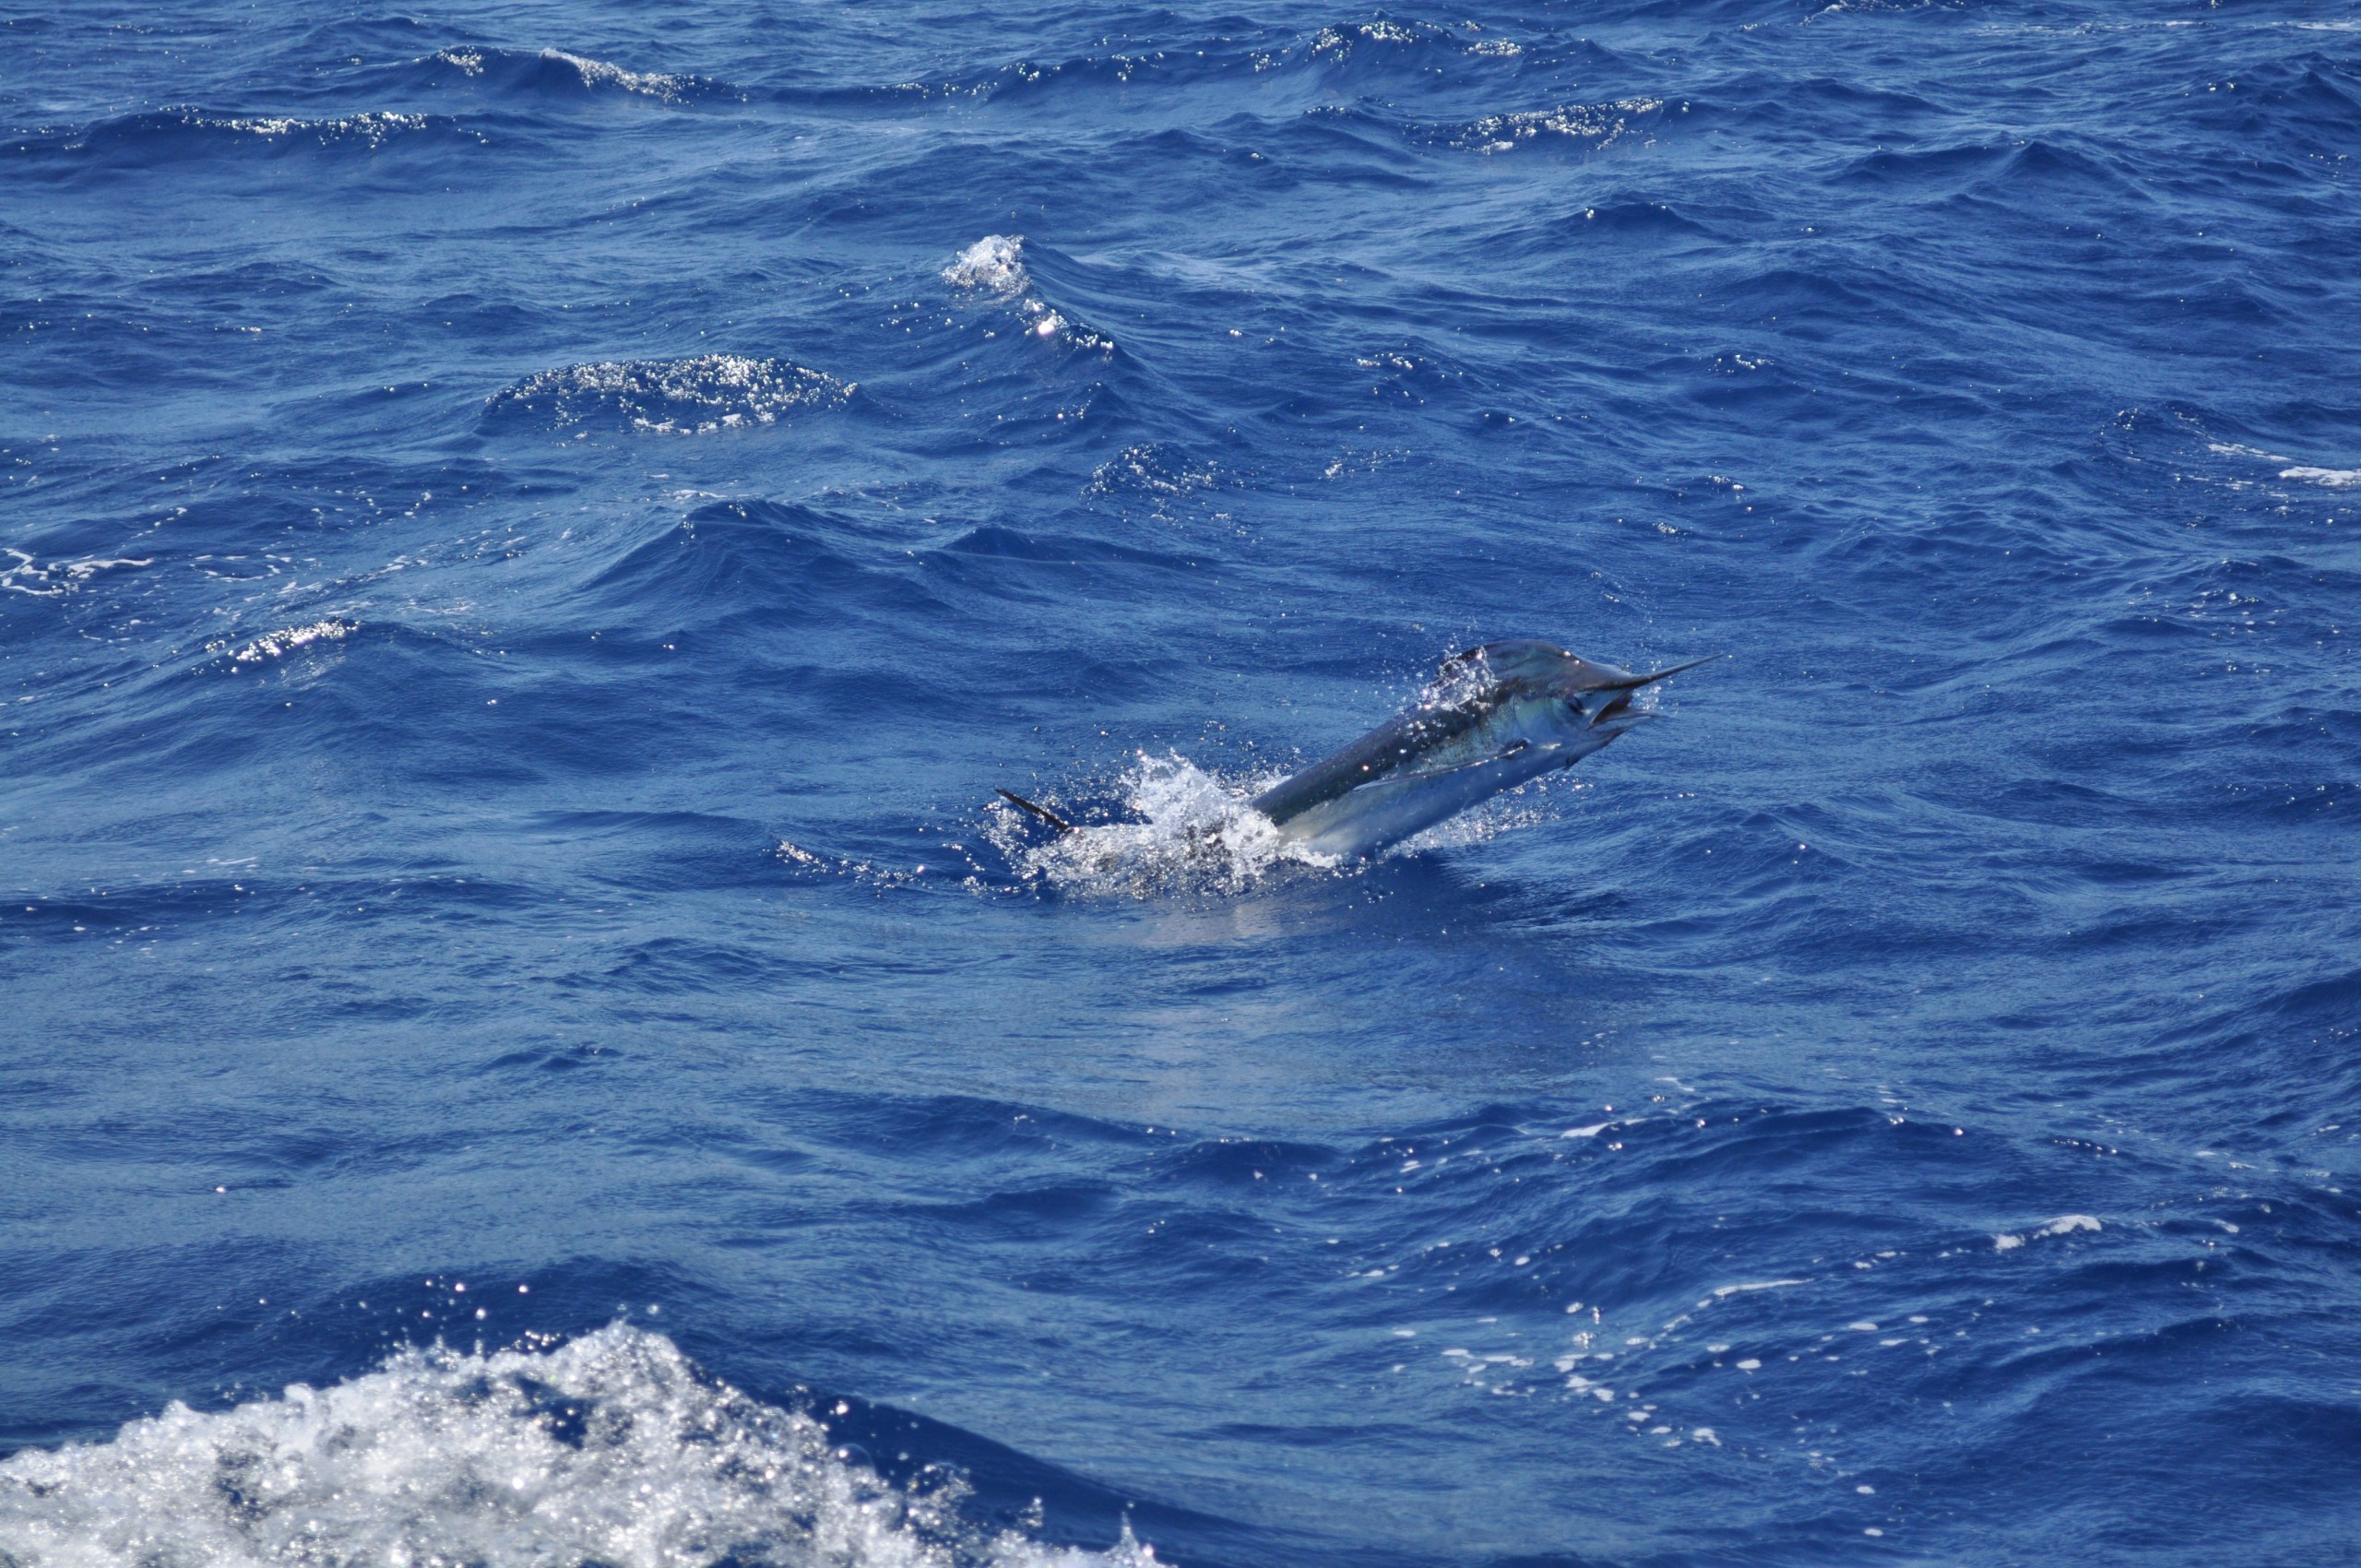 White Marlin Open to Host 47th Annual Offshore Fishing Tournament this August